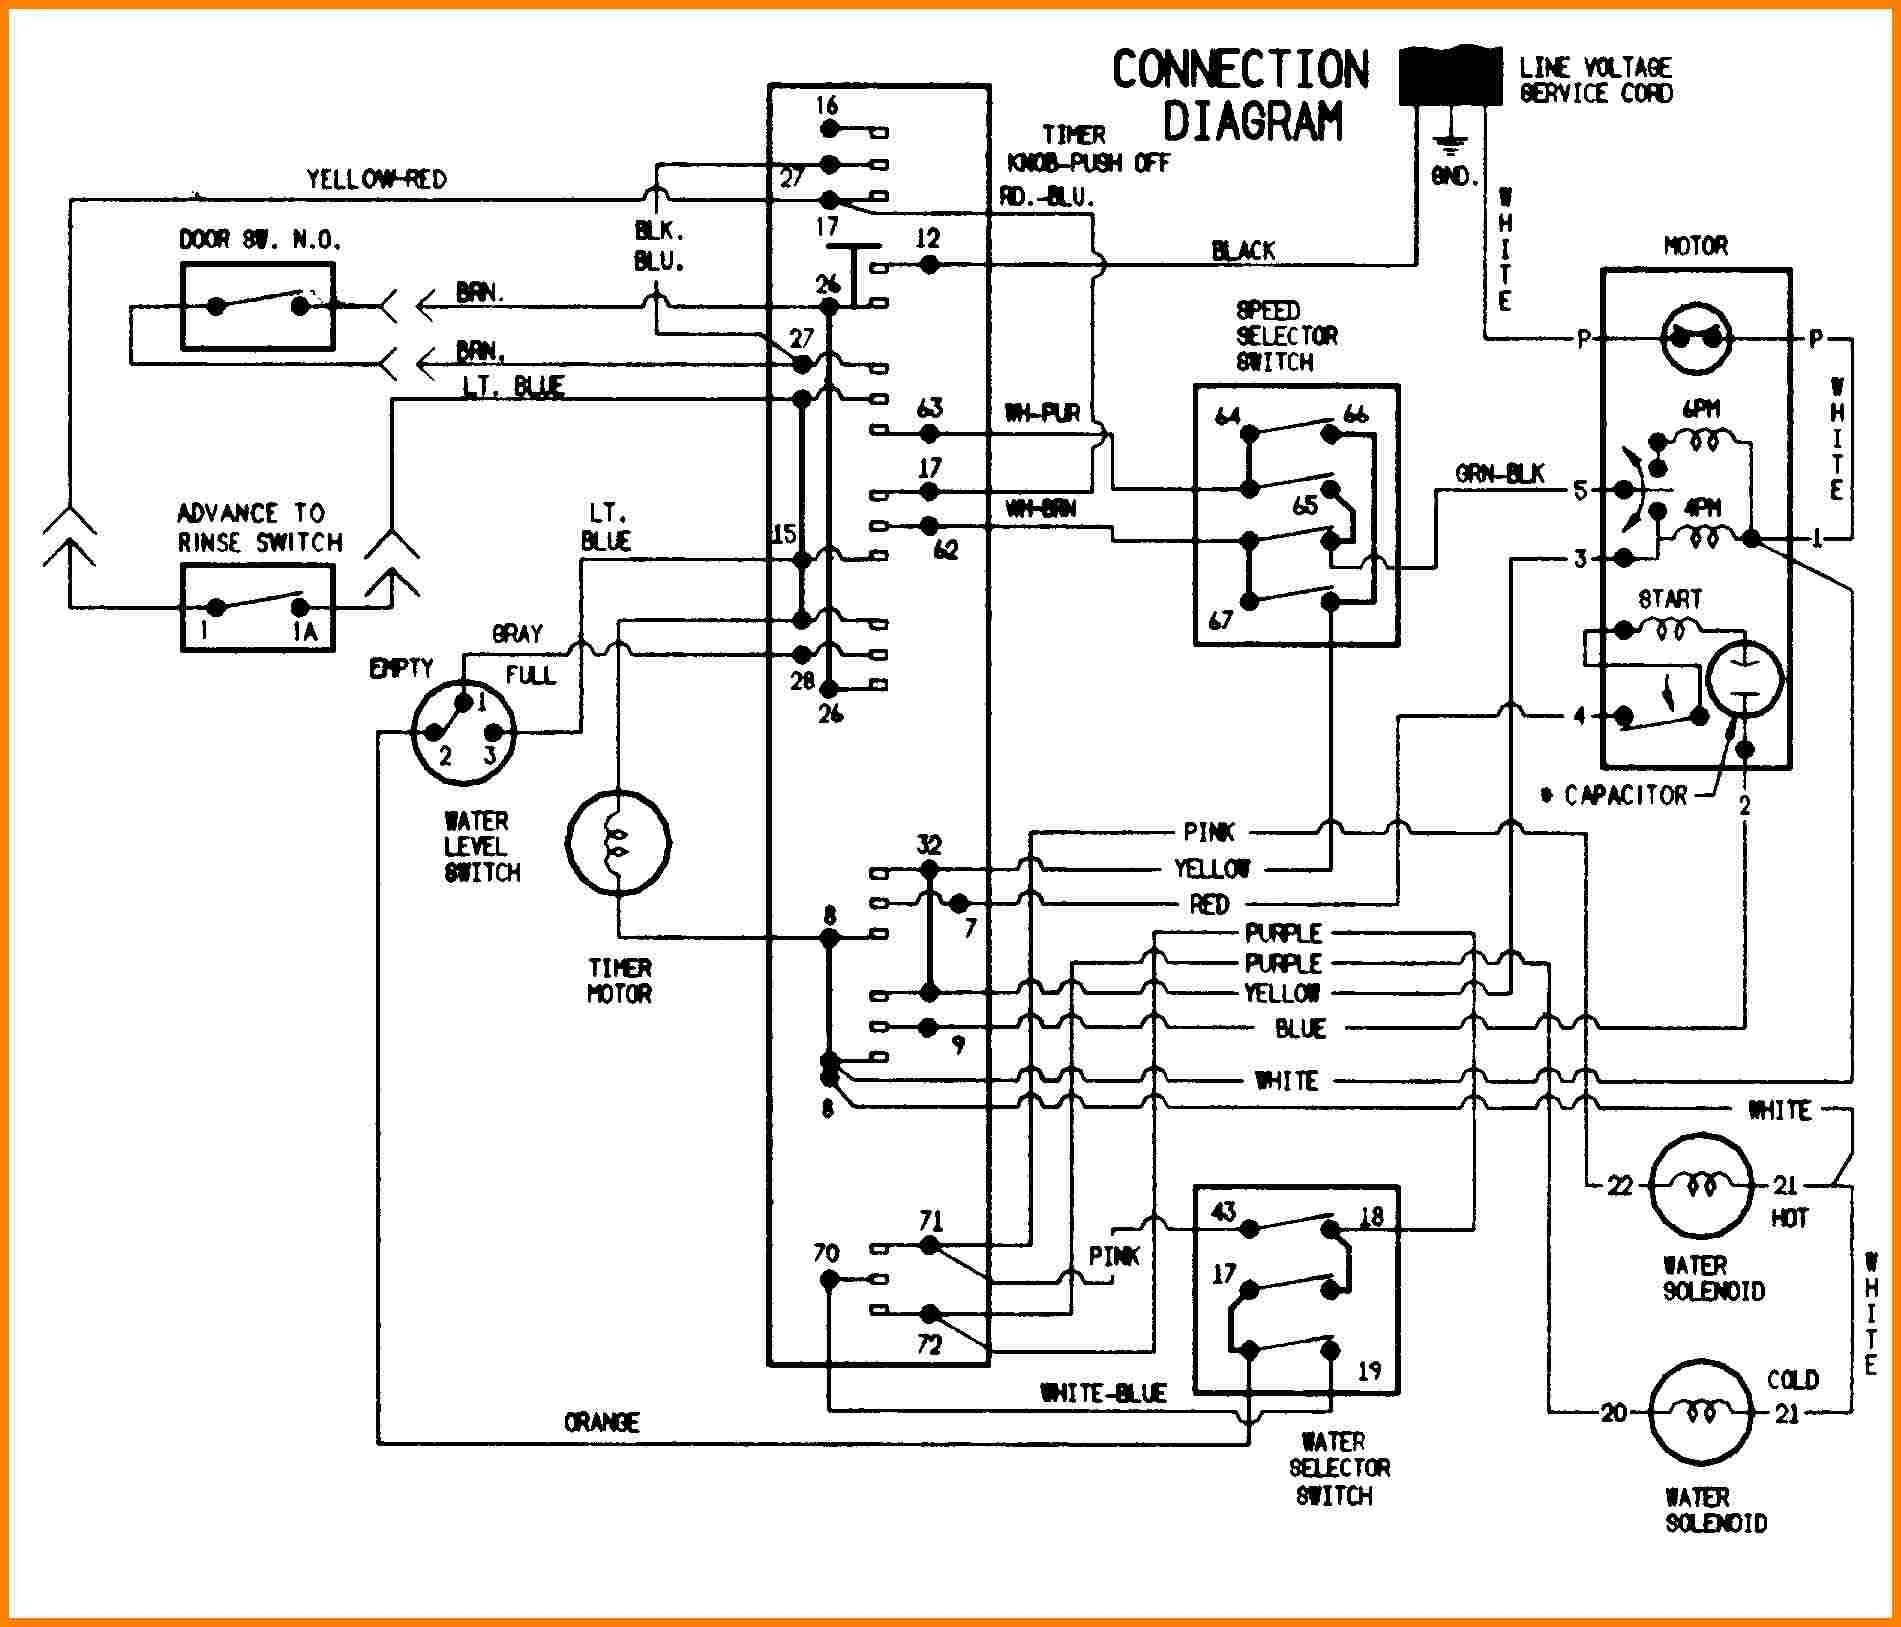 samsung washing machine wiring diagram pdf Collection-samsung washing machine wiring diagram wiring rh westpol co Electrical Wiring Diagrams For Dummies Electrical Wiring 2-h